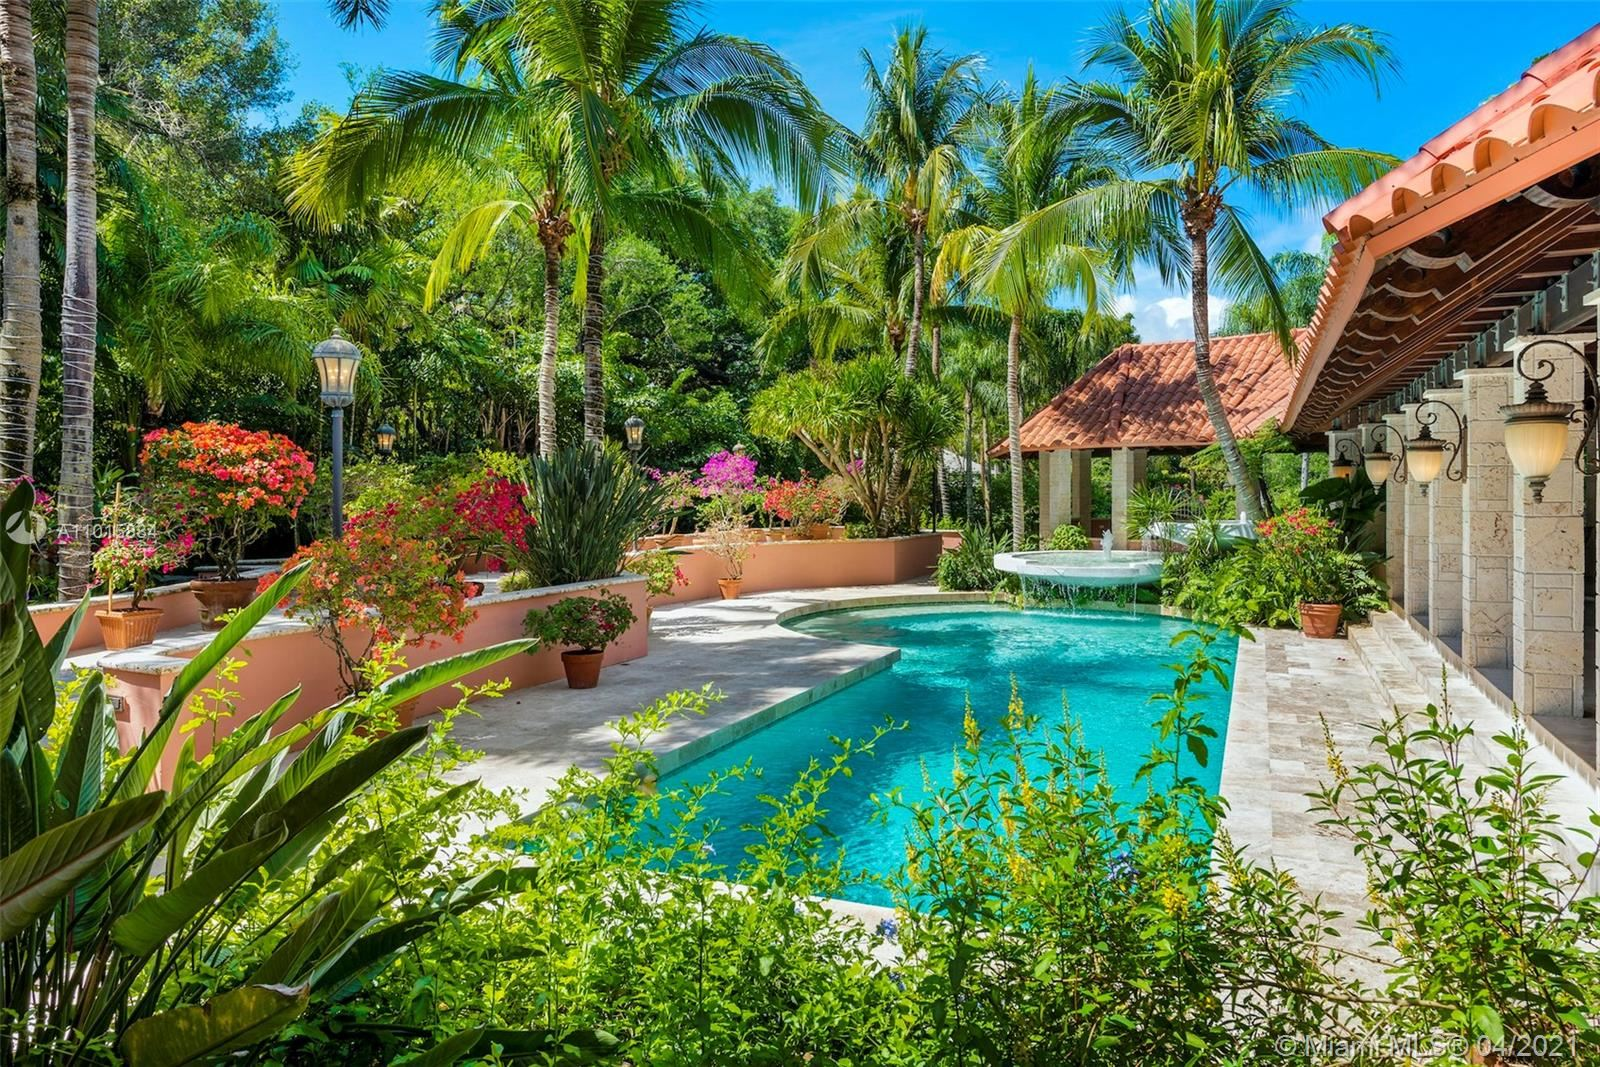 9990 Old Cutler Rd, Coral Gables, FL 33156 - #: A11015884